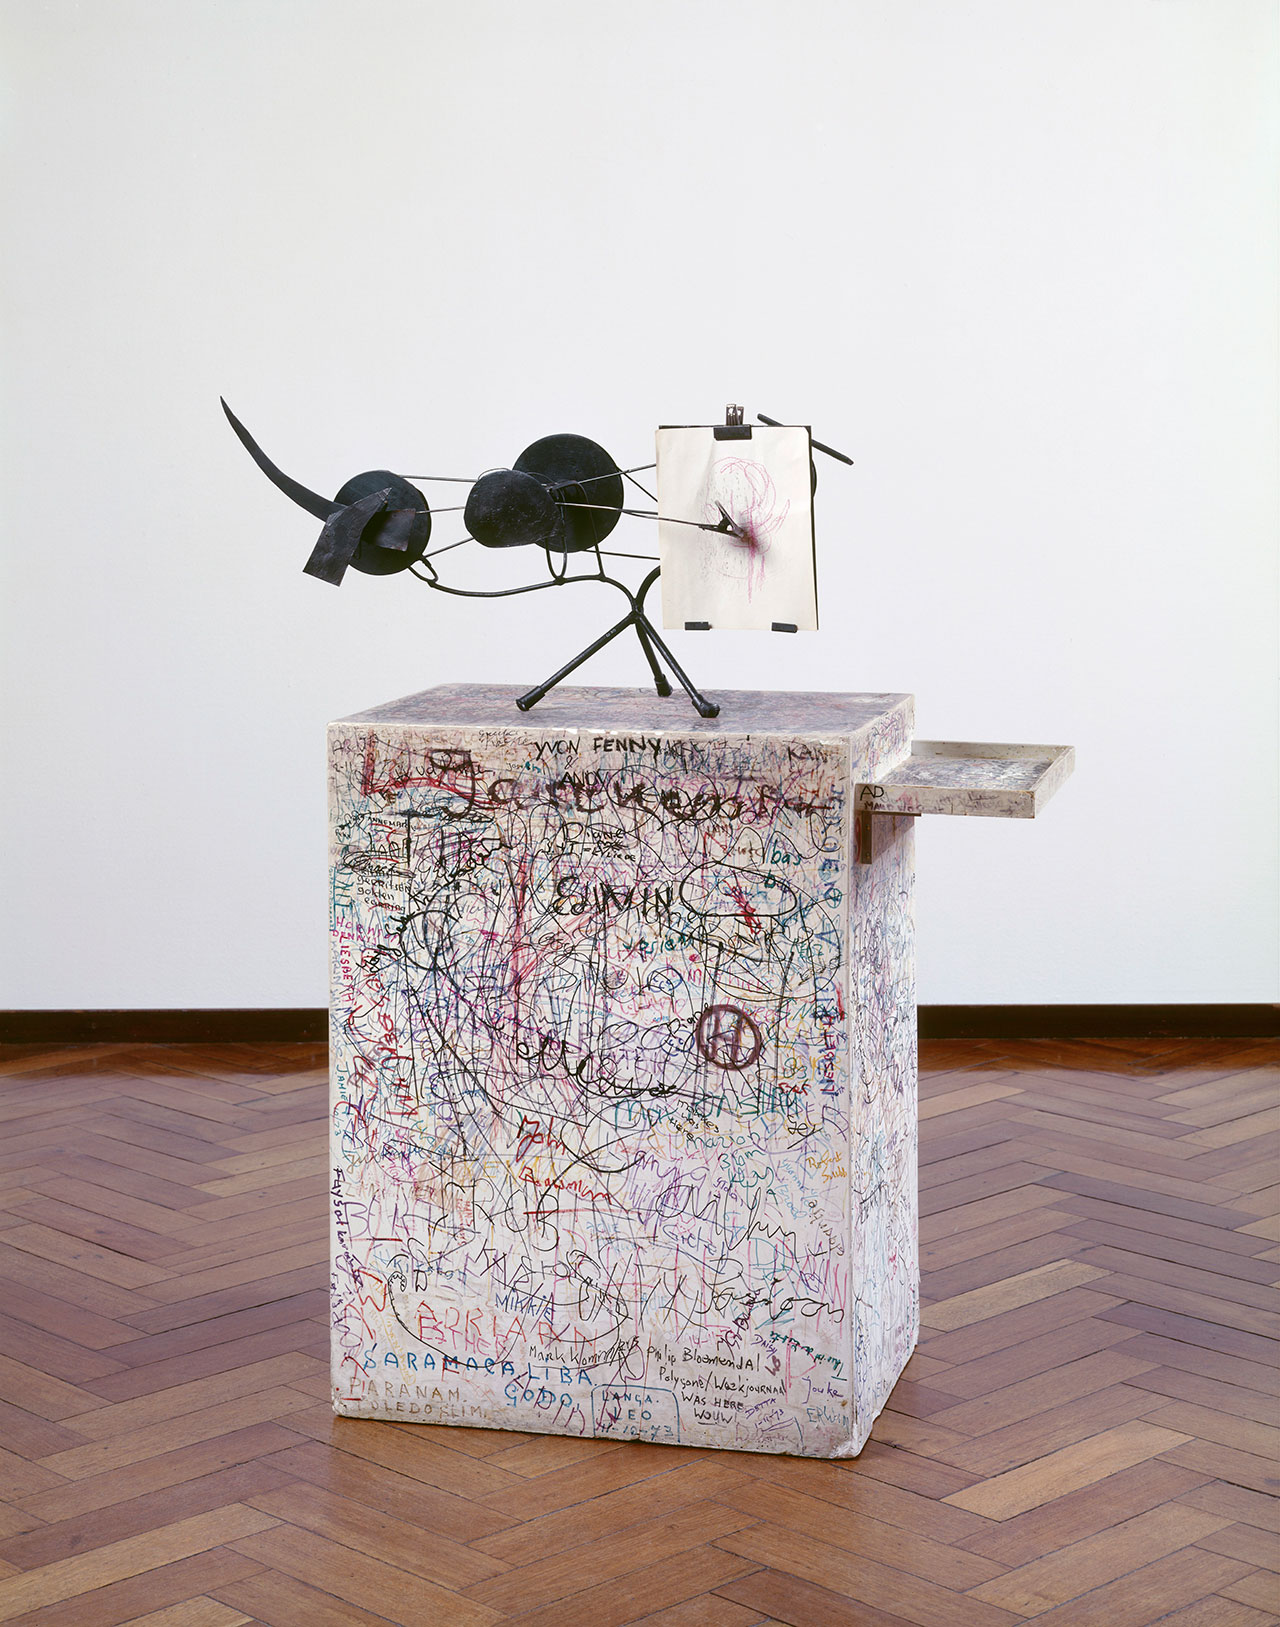 Jean Tinguely, Méta-Matic No. 10, 1959. Collection Stedelijk Museum Amsterdam, c/o Pictoright Amsterdam, 2016.